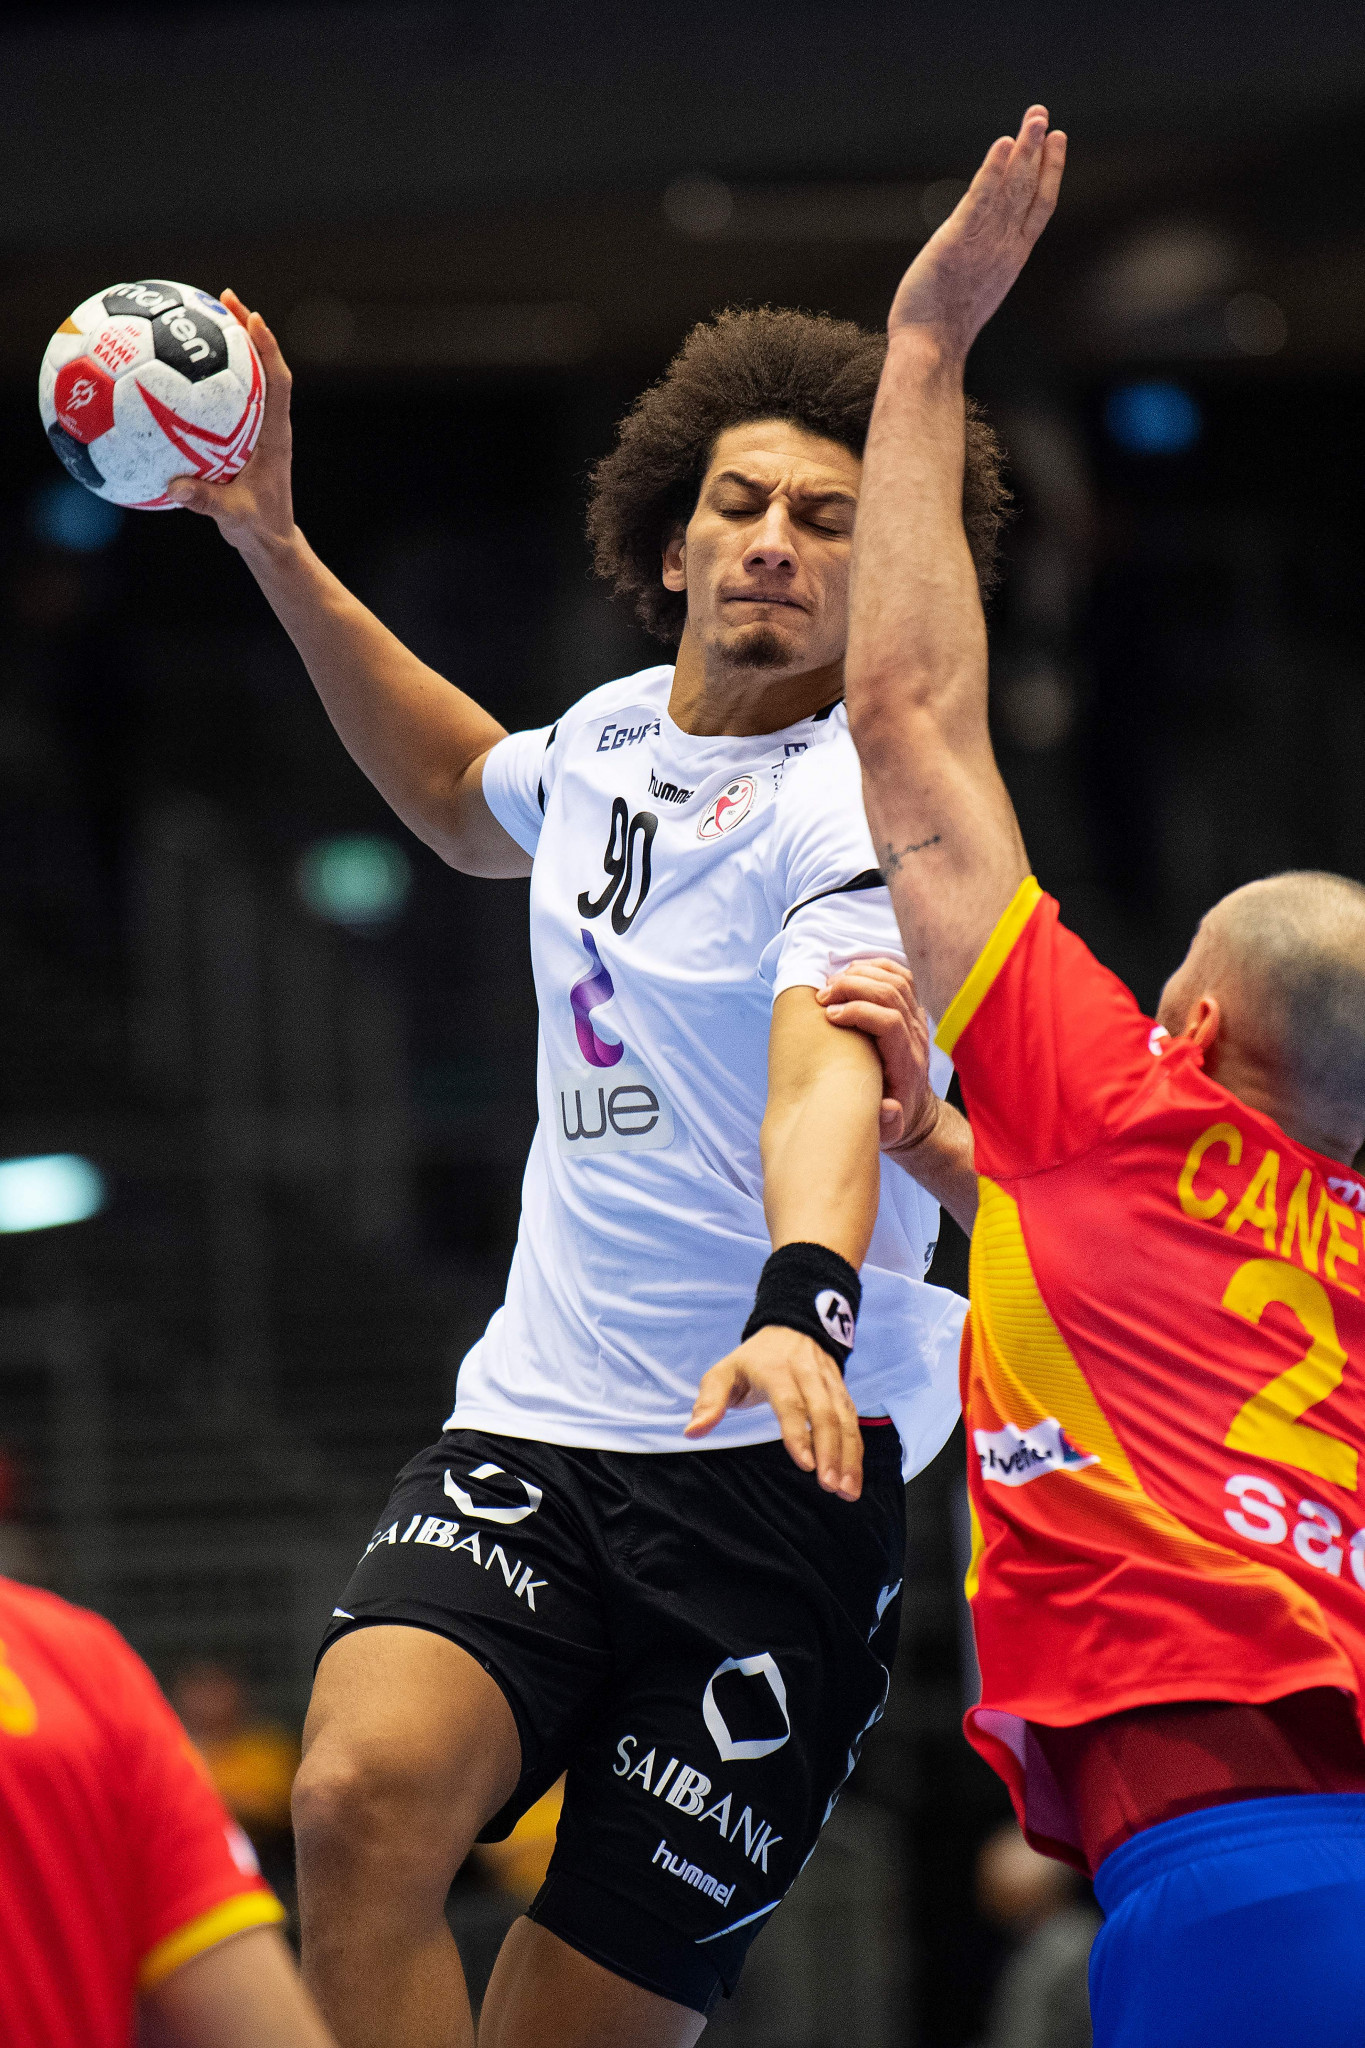 Egypt beat hosts Tunisia to reclaim African Men's Handball title and earn Tokyo 2020 place